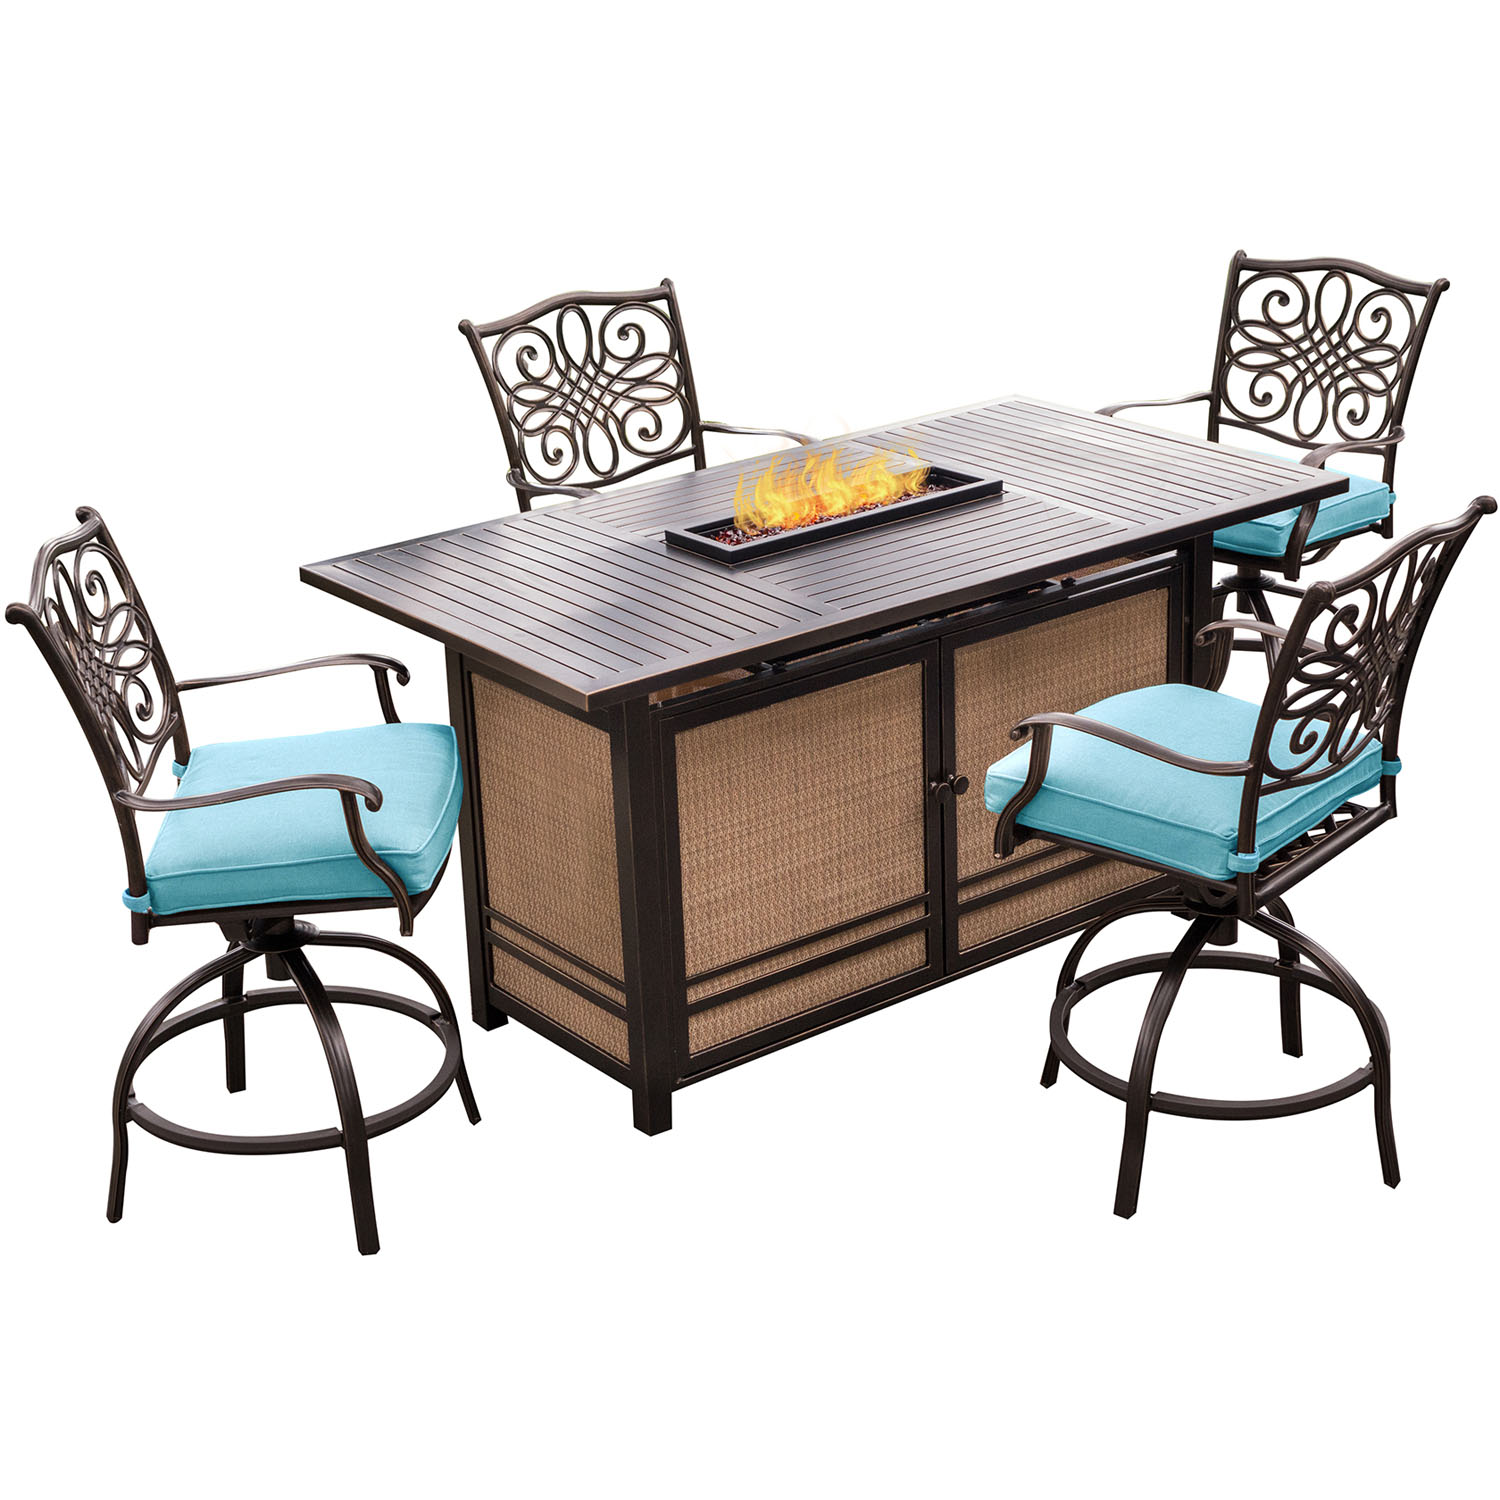 Fire Pit Table And Chairs Set Hanover Traditions 5 Piece High Dining Set In Blue With 4